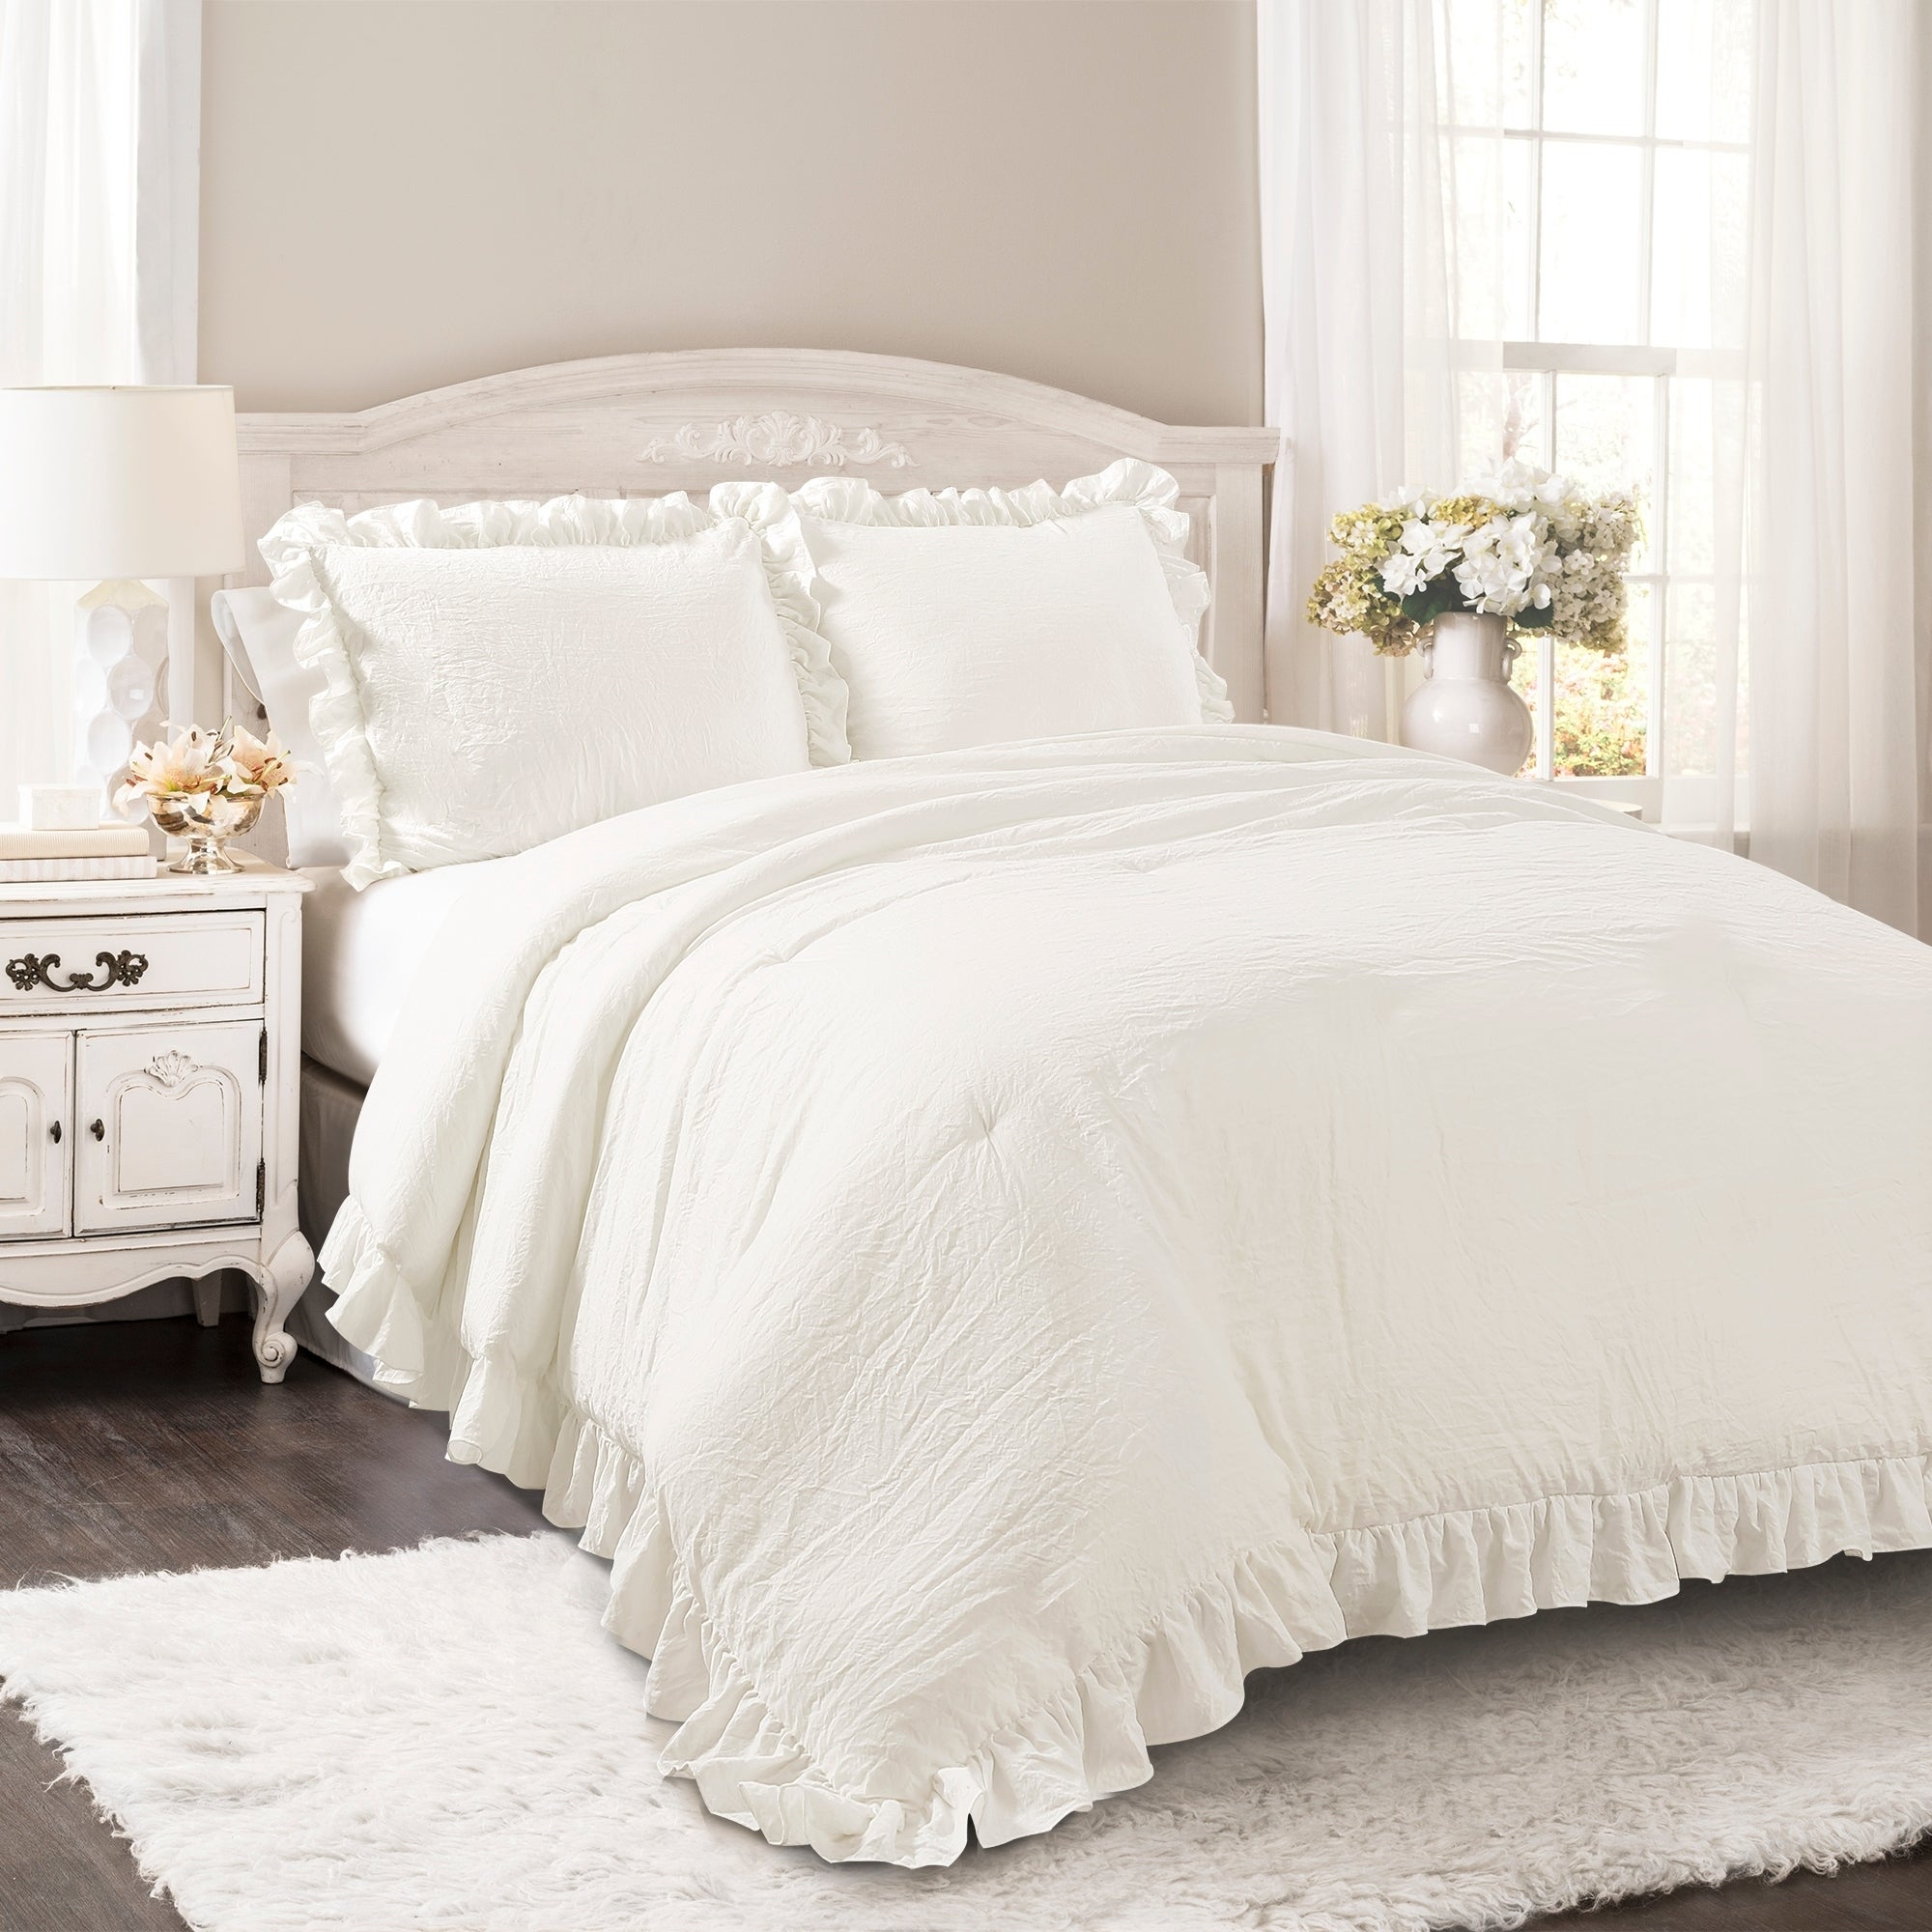 bedding grey s white king rowley cynthia gray comforter dark ruched ruffle